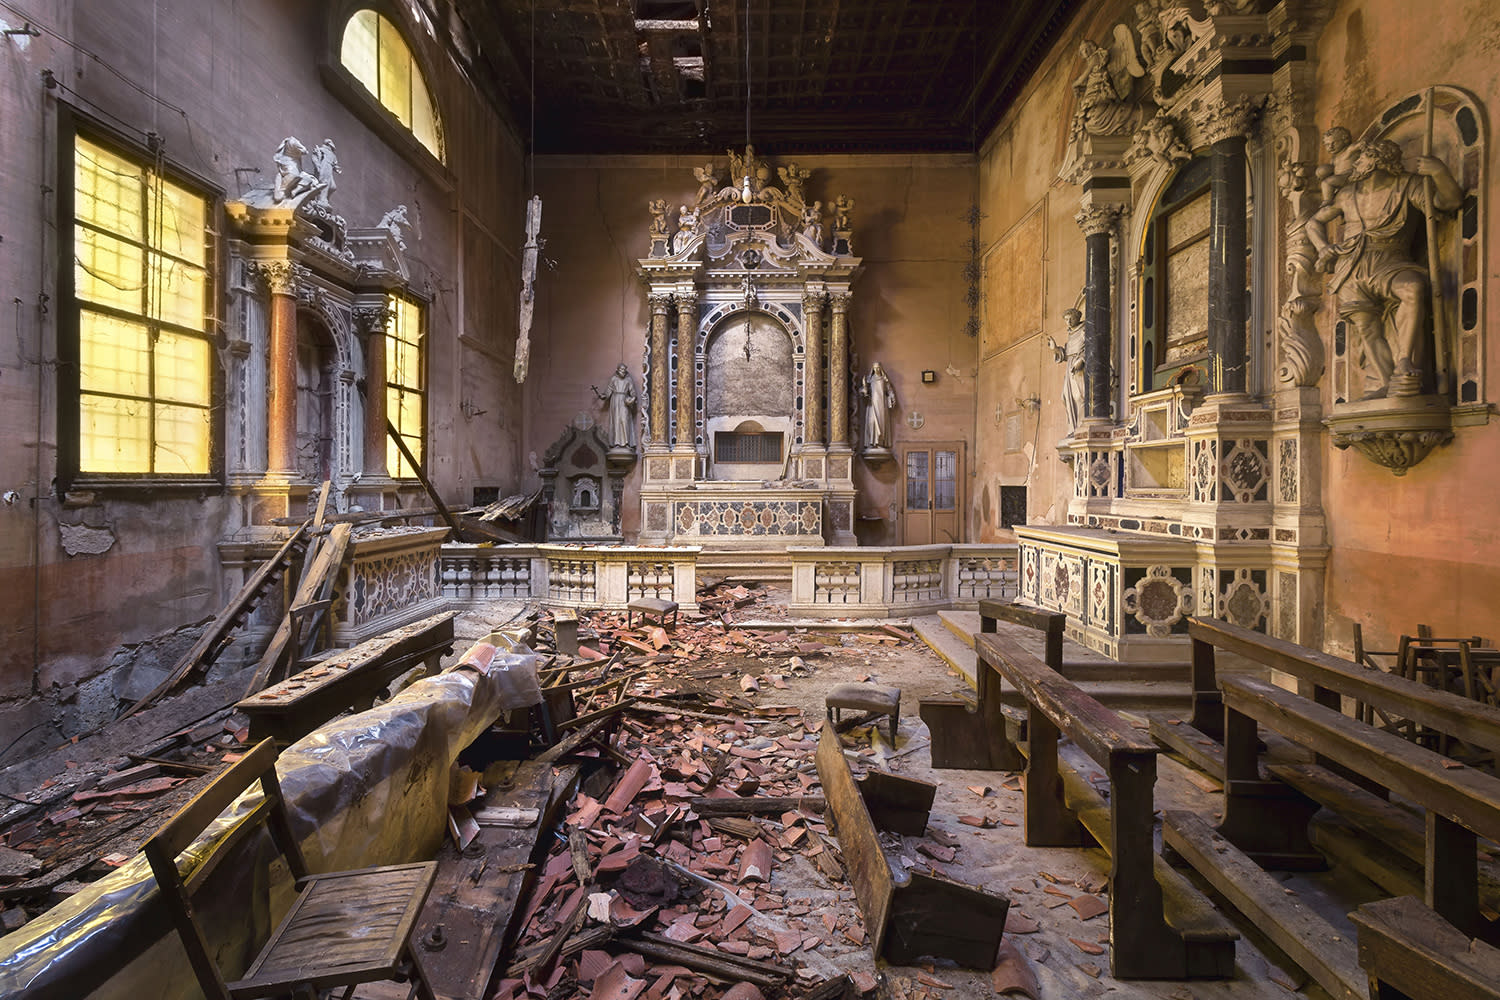 <p>Robroek photographed churches up and down Italy on holidays from his home in the Netherlands. (Photo: Roman Robroek/Caters News) </p>